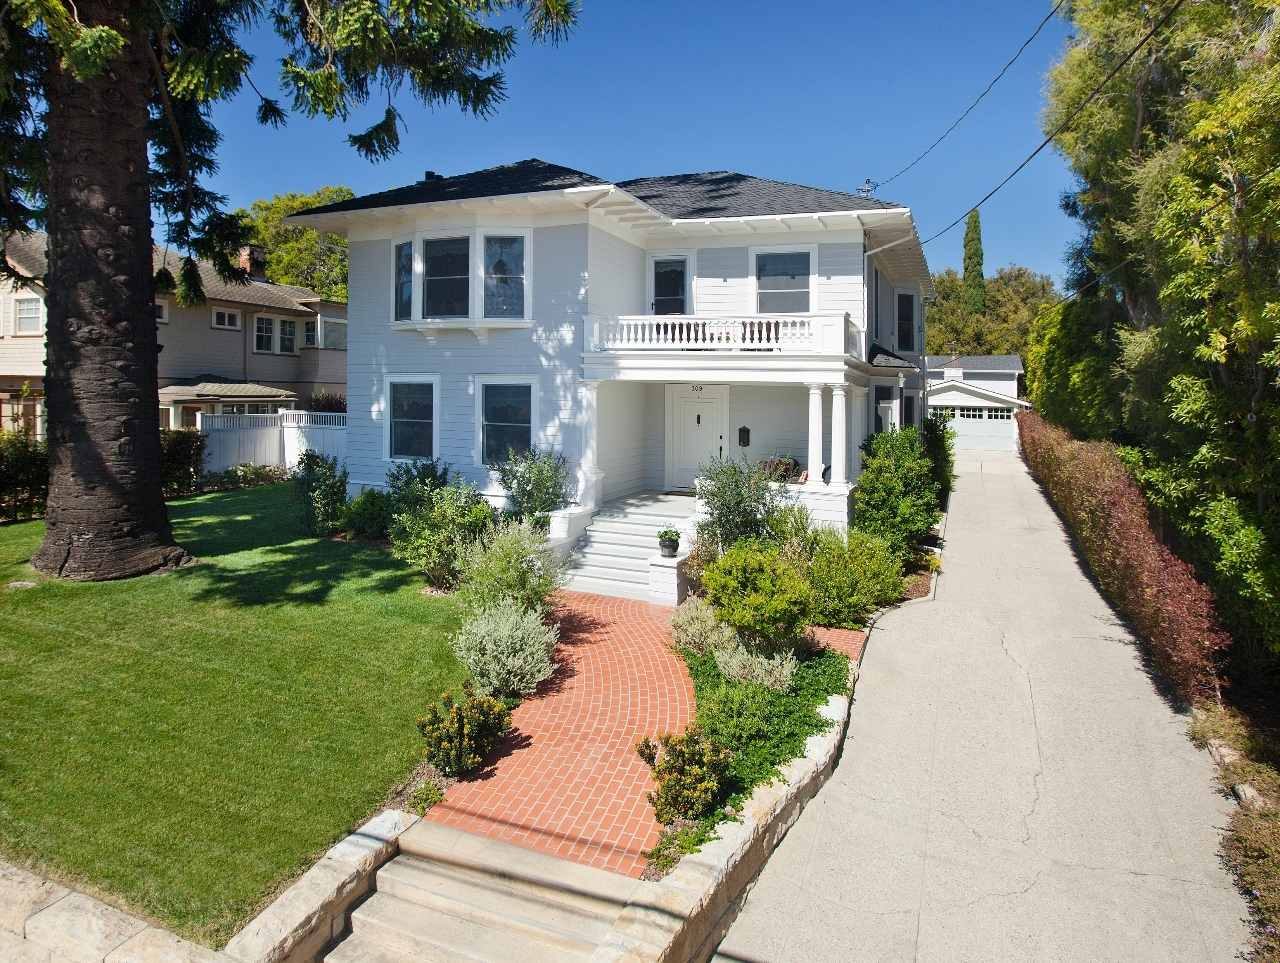 Property photo for 309 E Valerio St Santa Barbara, California 93101 - 13-745